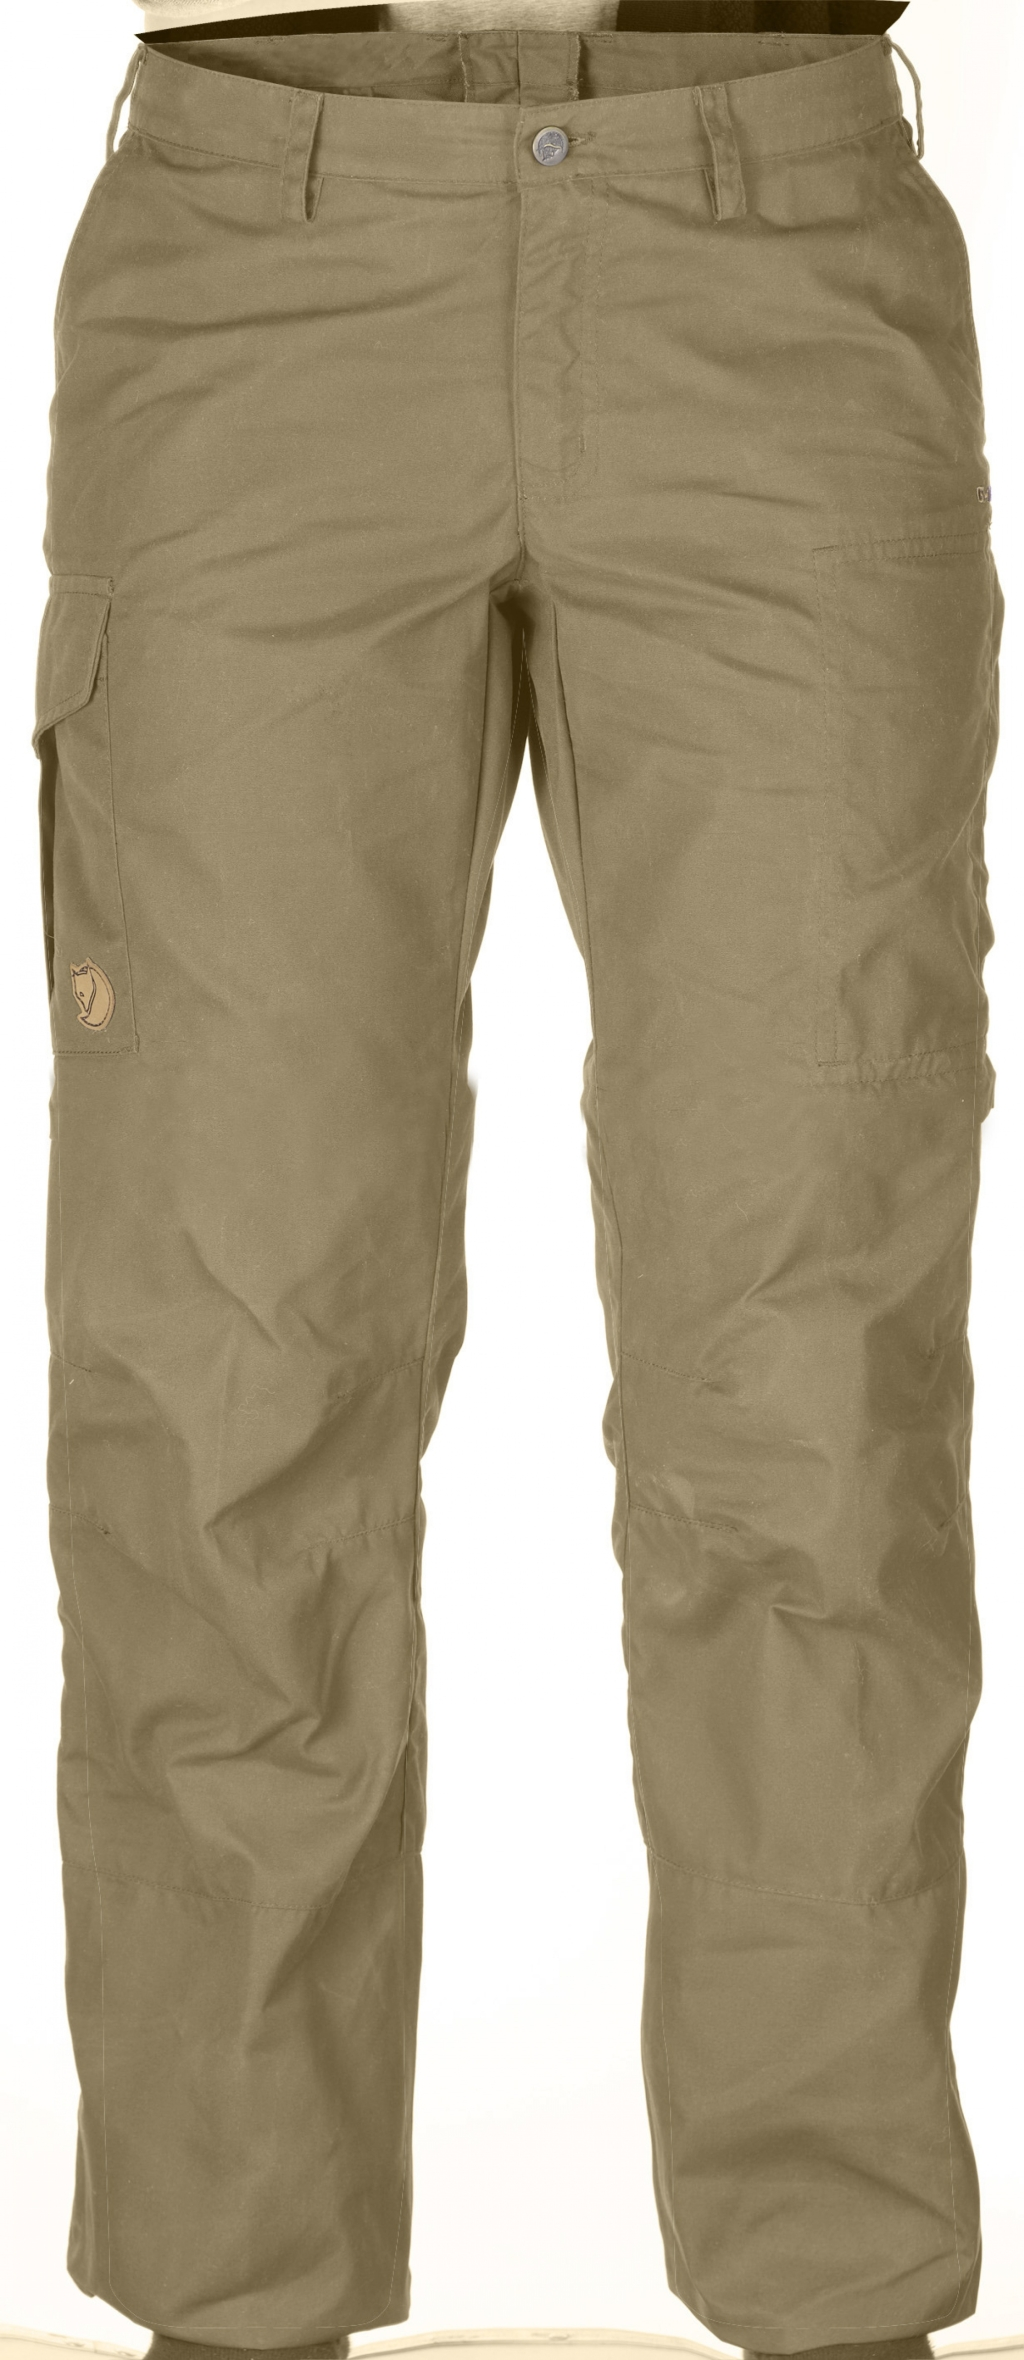 FjallRaven Karla Pro Trousers Curved Sand-30